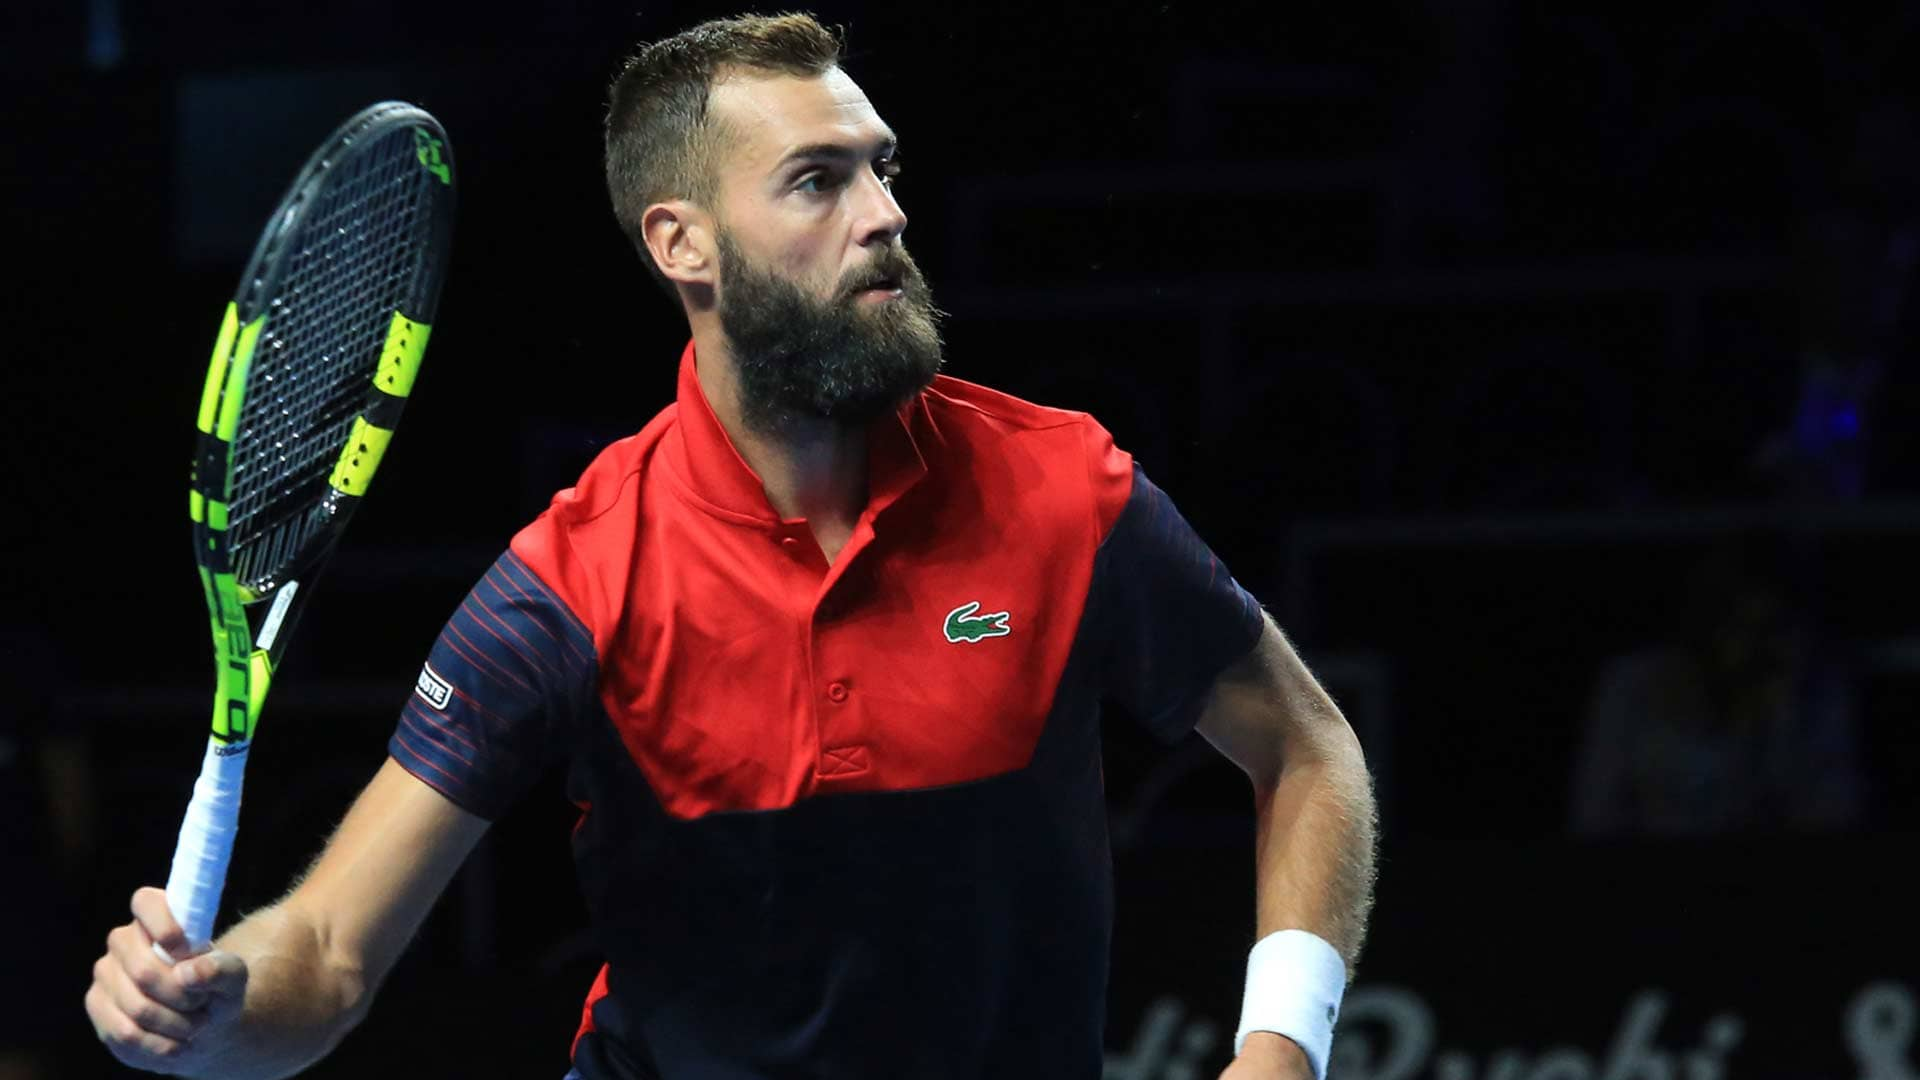 Benoit Paire hits a volley in Metz 2019